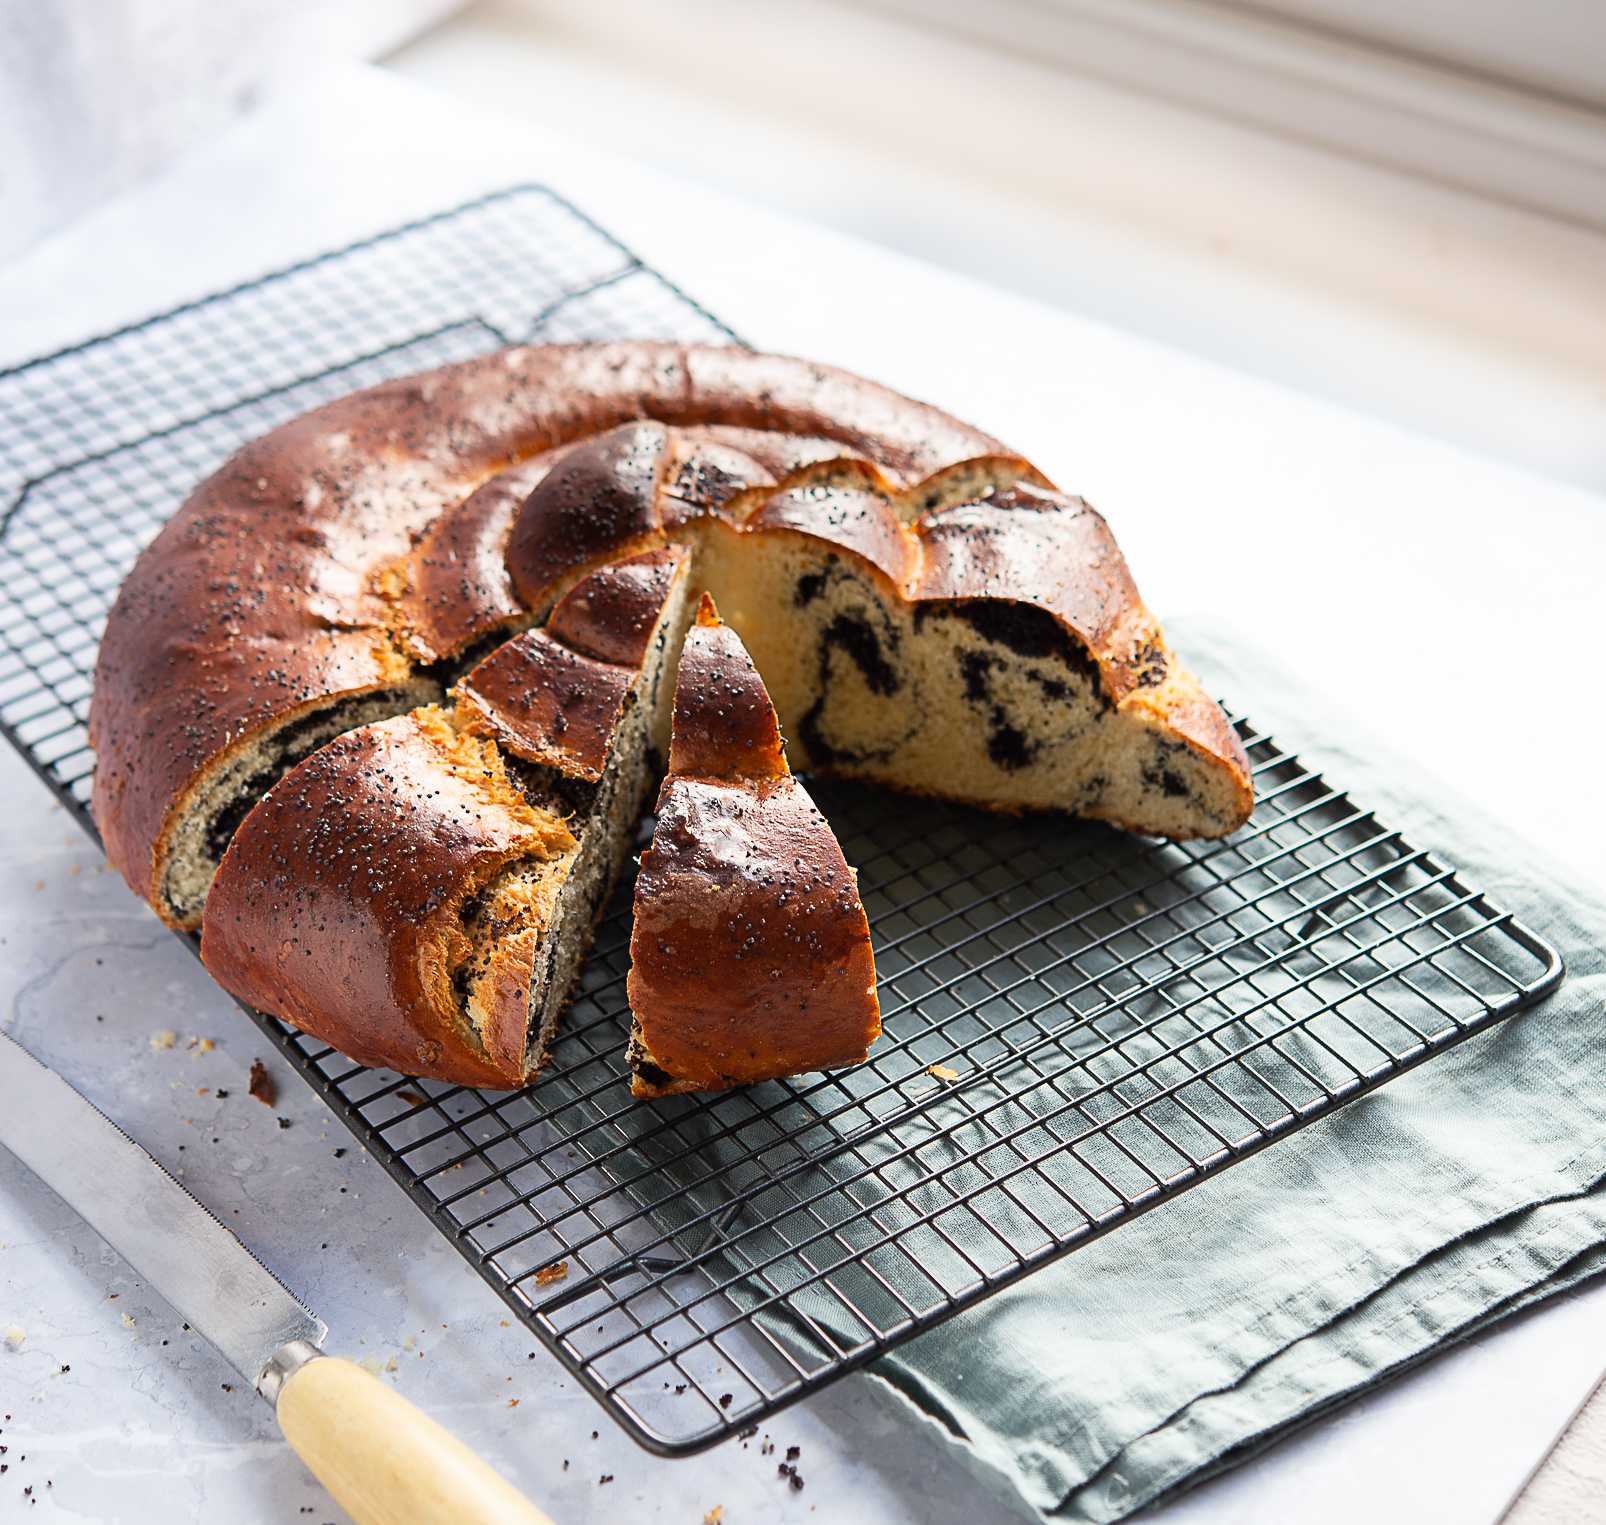 Colac with poppy seeds